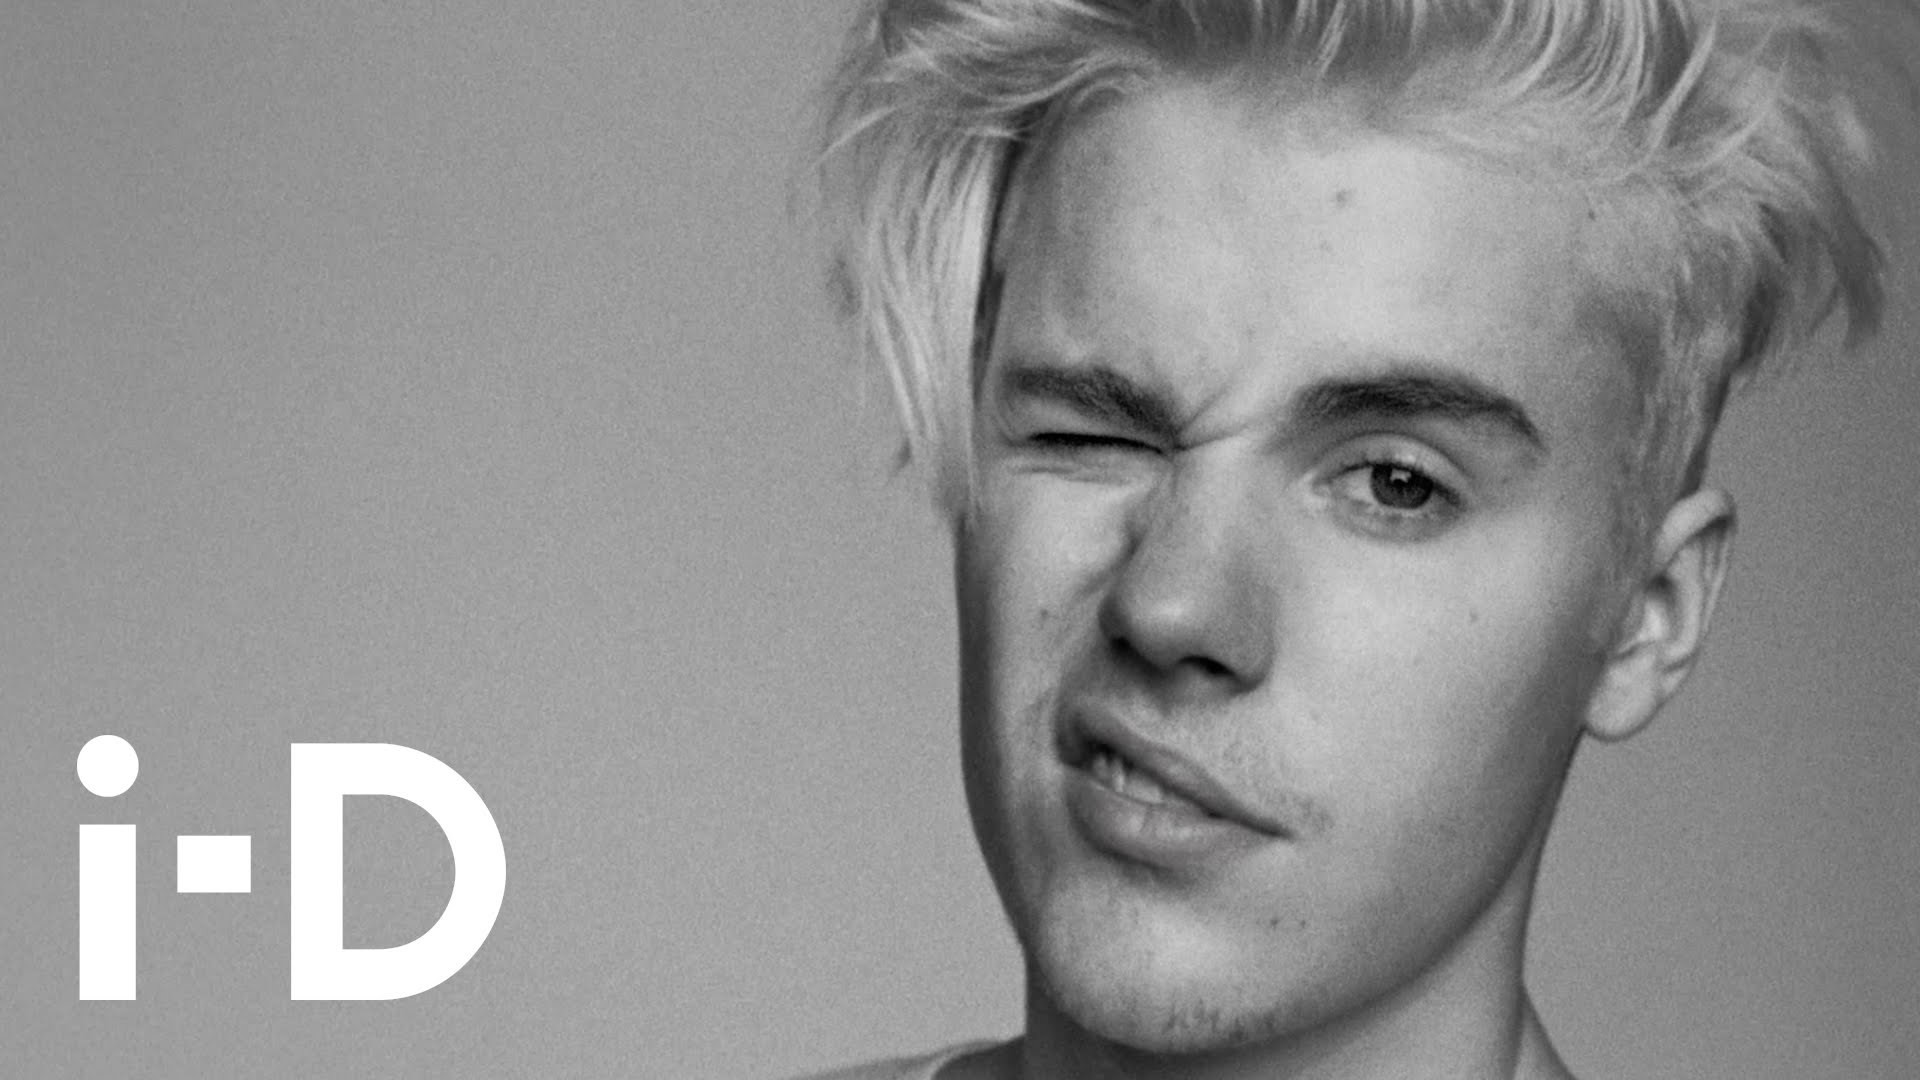 see justin bieber's i-D cover shoot in motion